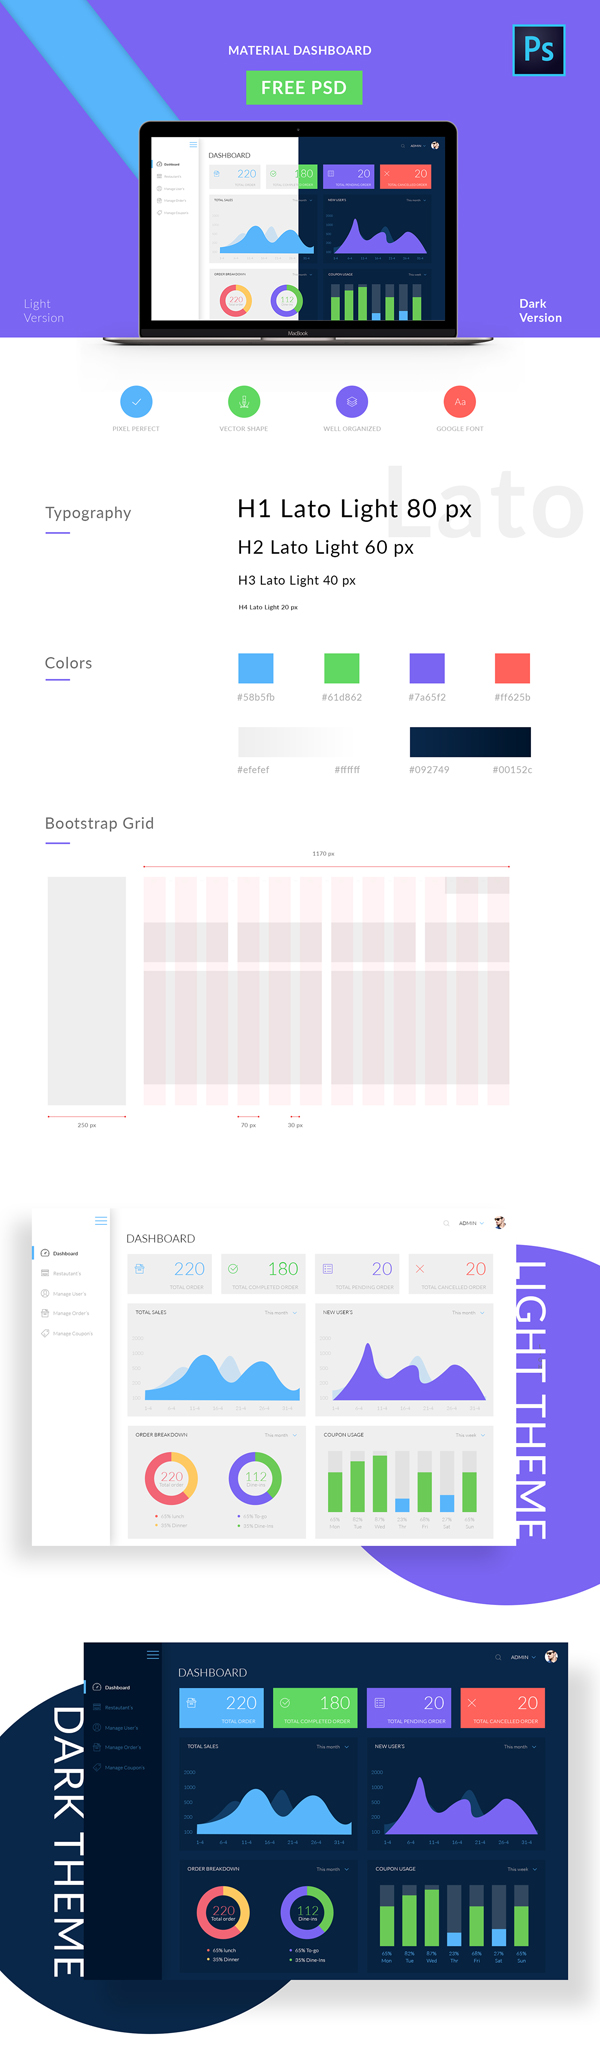 Free Material Dashboard Light, Dark UI Templates